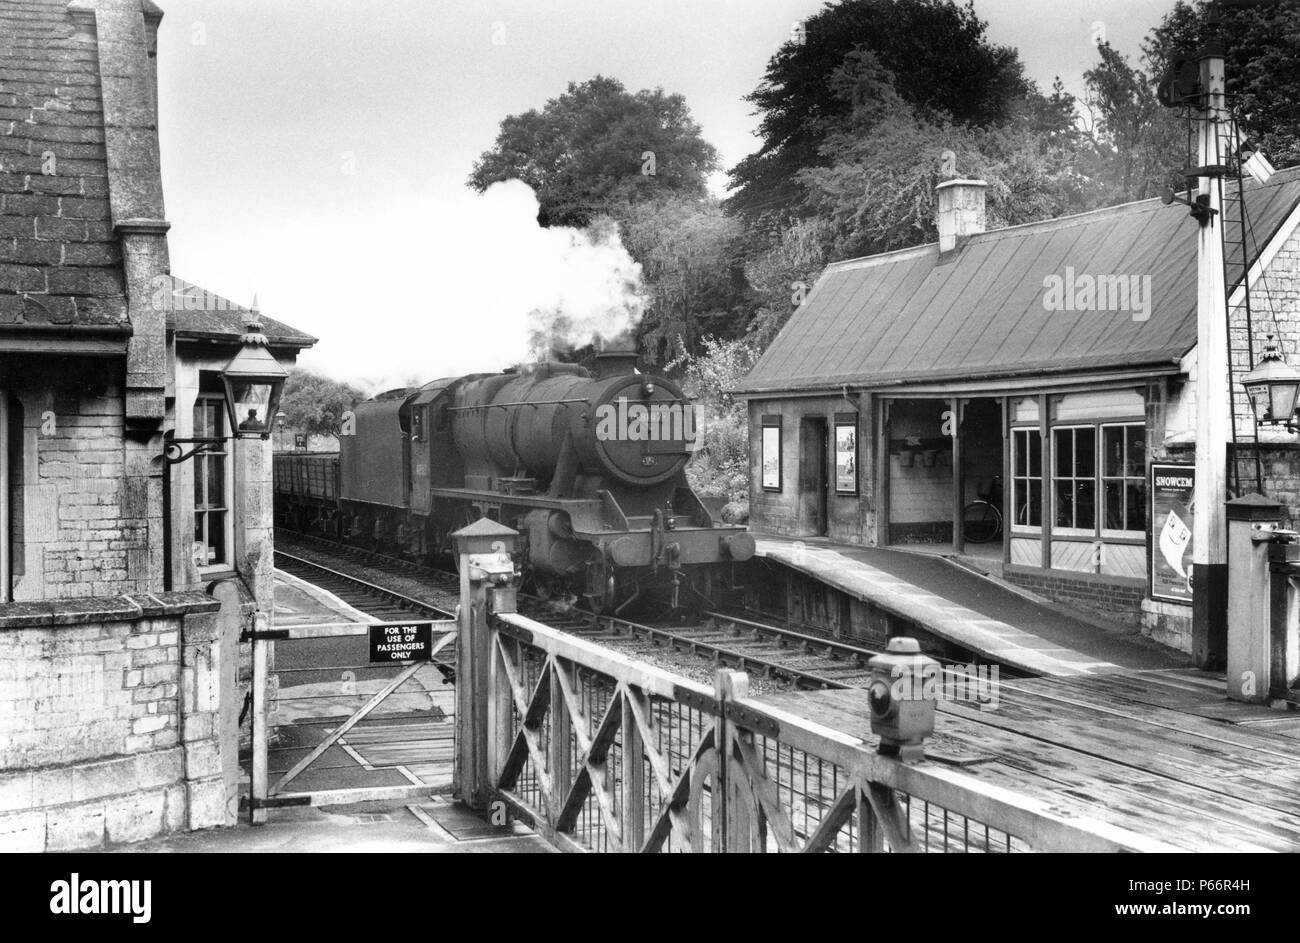 Ketton and Collyweston station in Rutland, England's smallest county. A Stanier 8F steams through with a rake of freight empties. c1960 - Stock Image